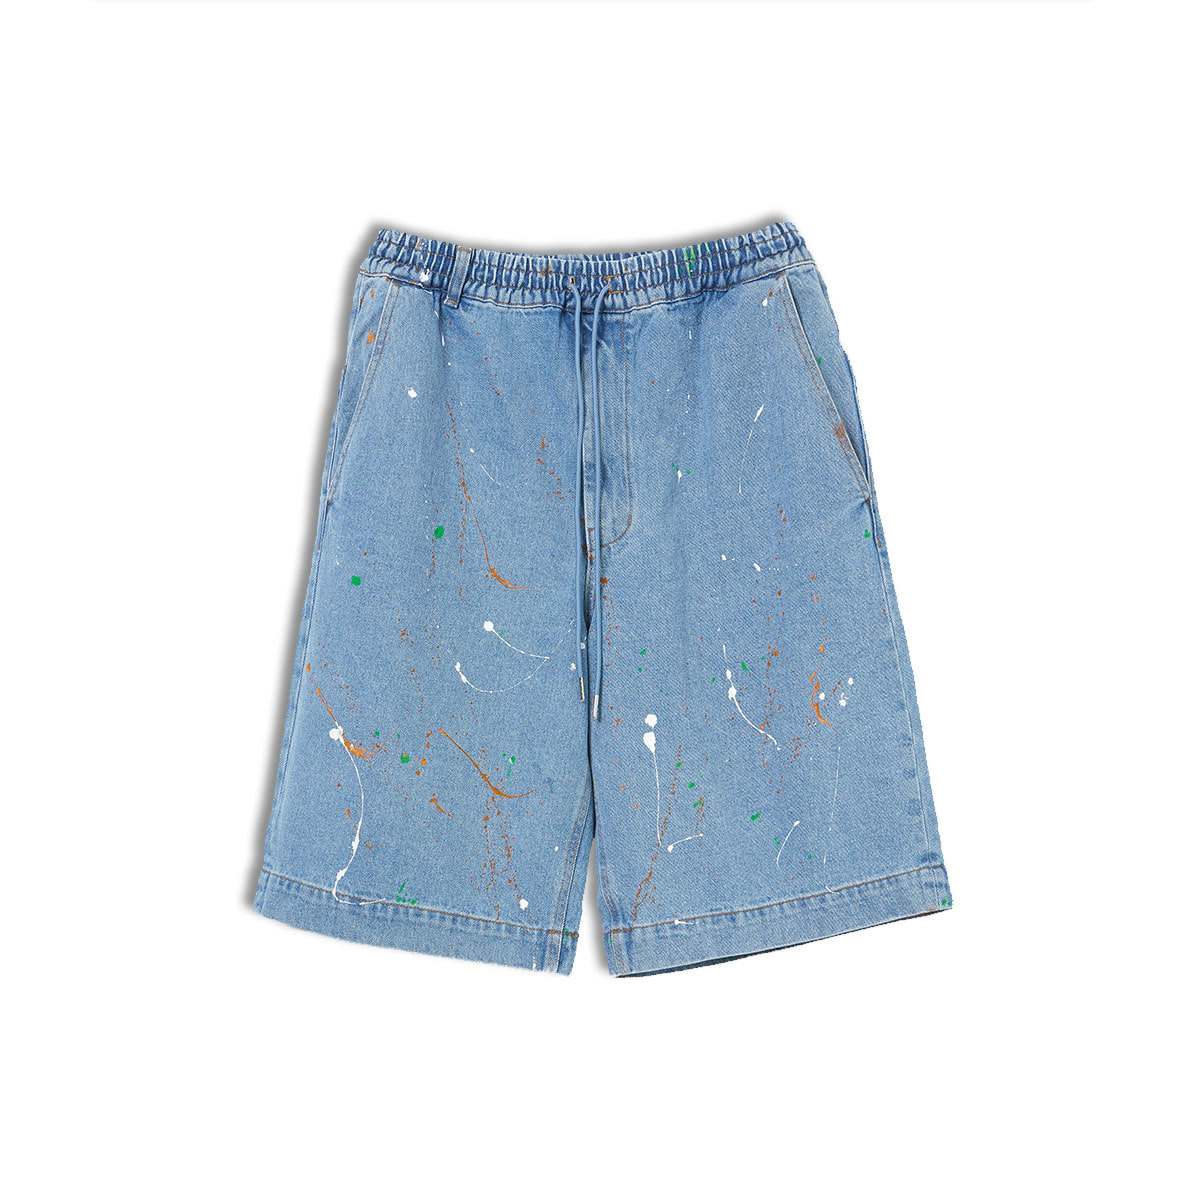 [ENIGMA] WIDE PAINTING DENIM SHORTS 'LIGHT BLUE'